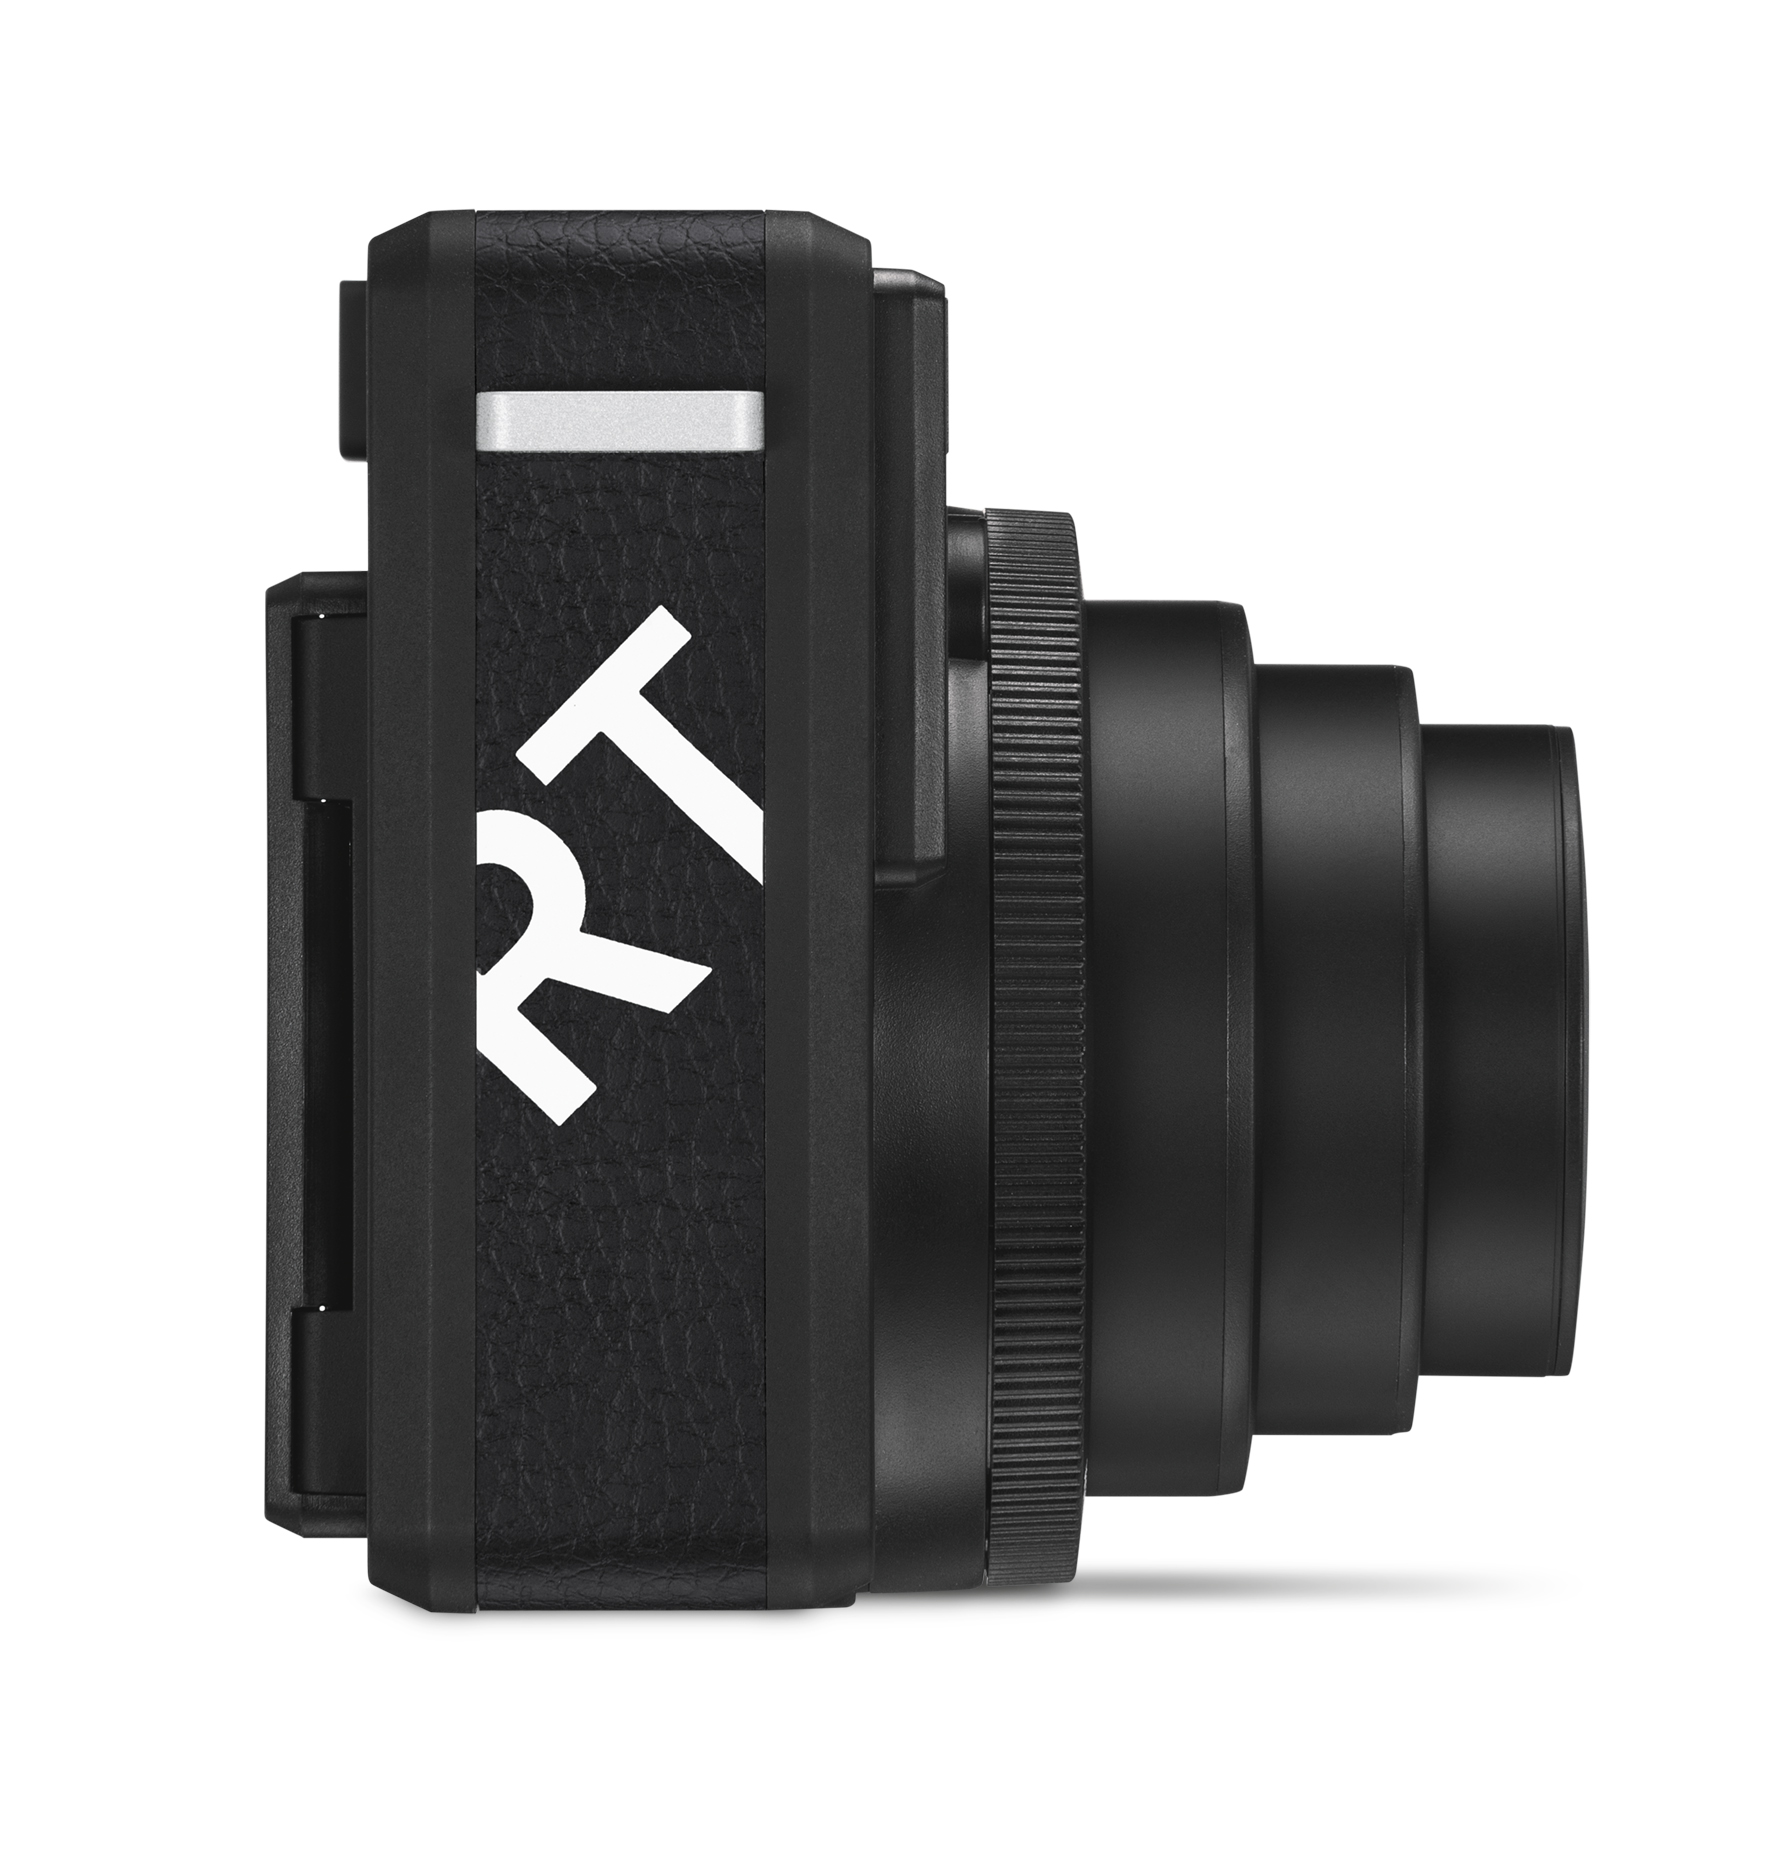 Leica SOFORT black_right_RGB.jpg